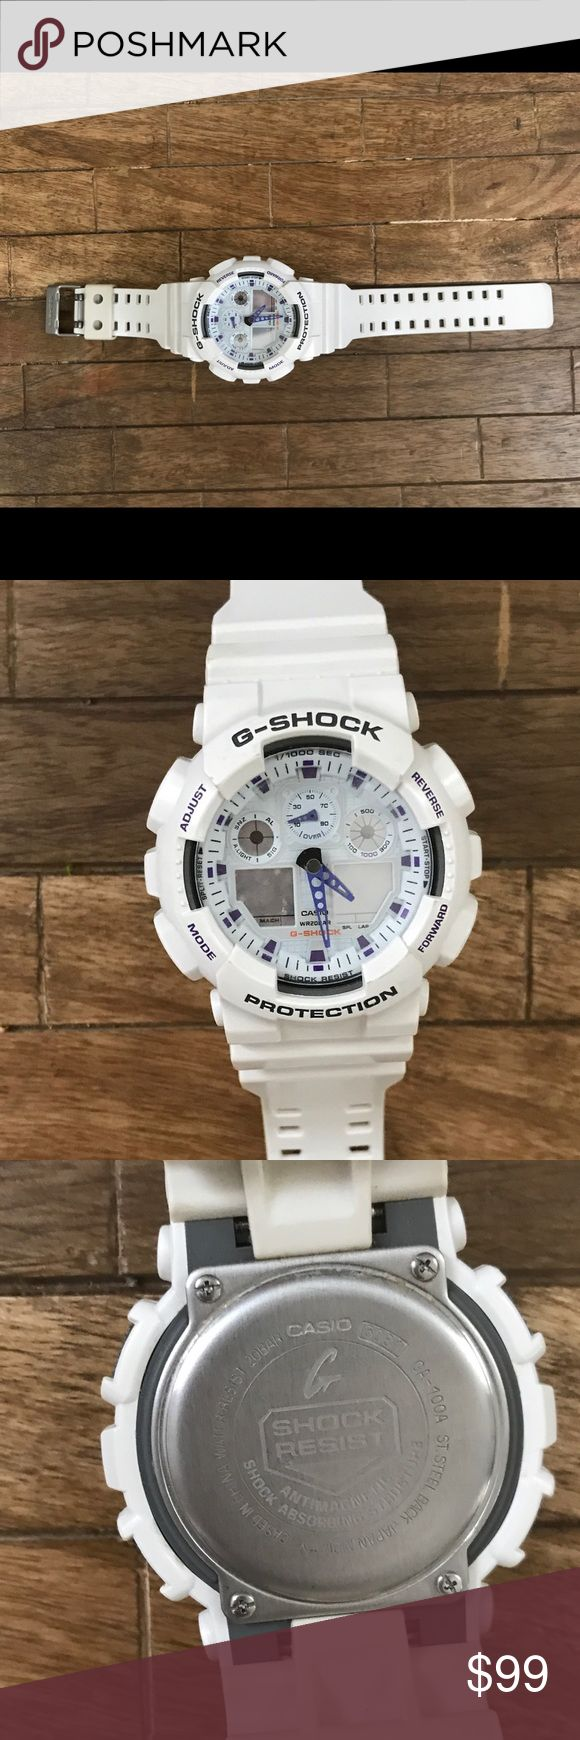 Men's G SHOCK watch Fully functioning white G SHOCK watch! White is still very white/not discolored.. overall great condition Accessories Watches